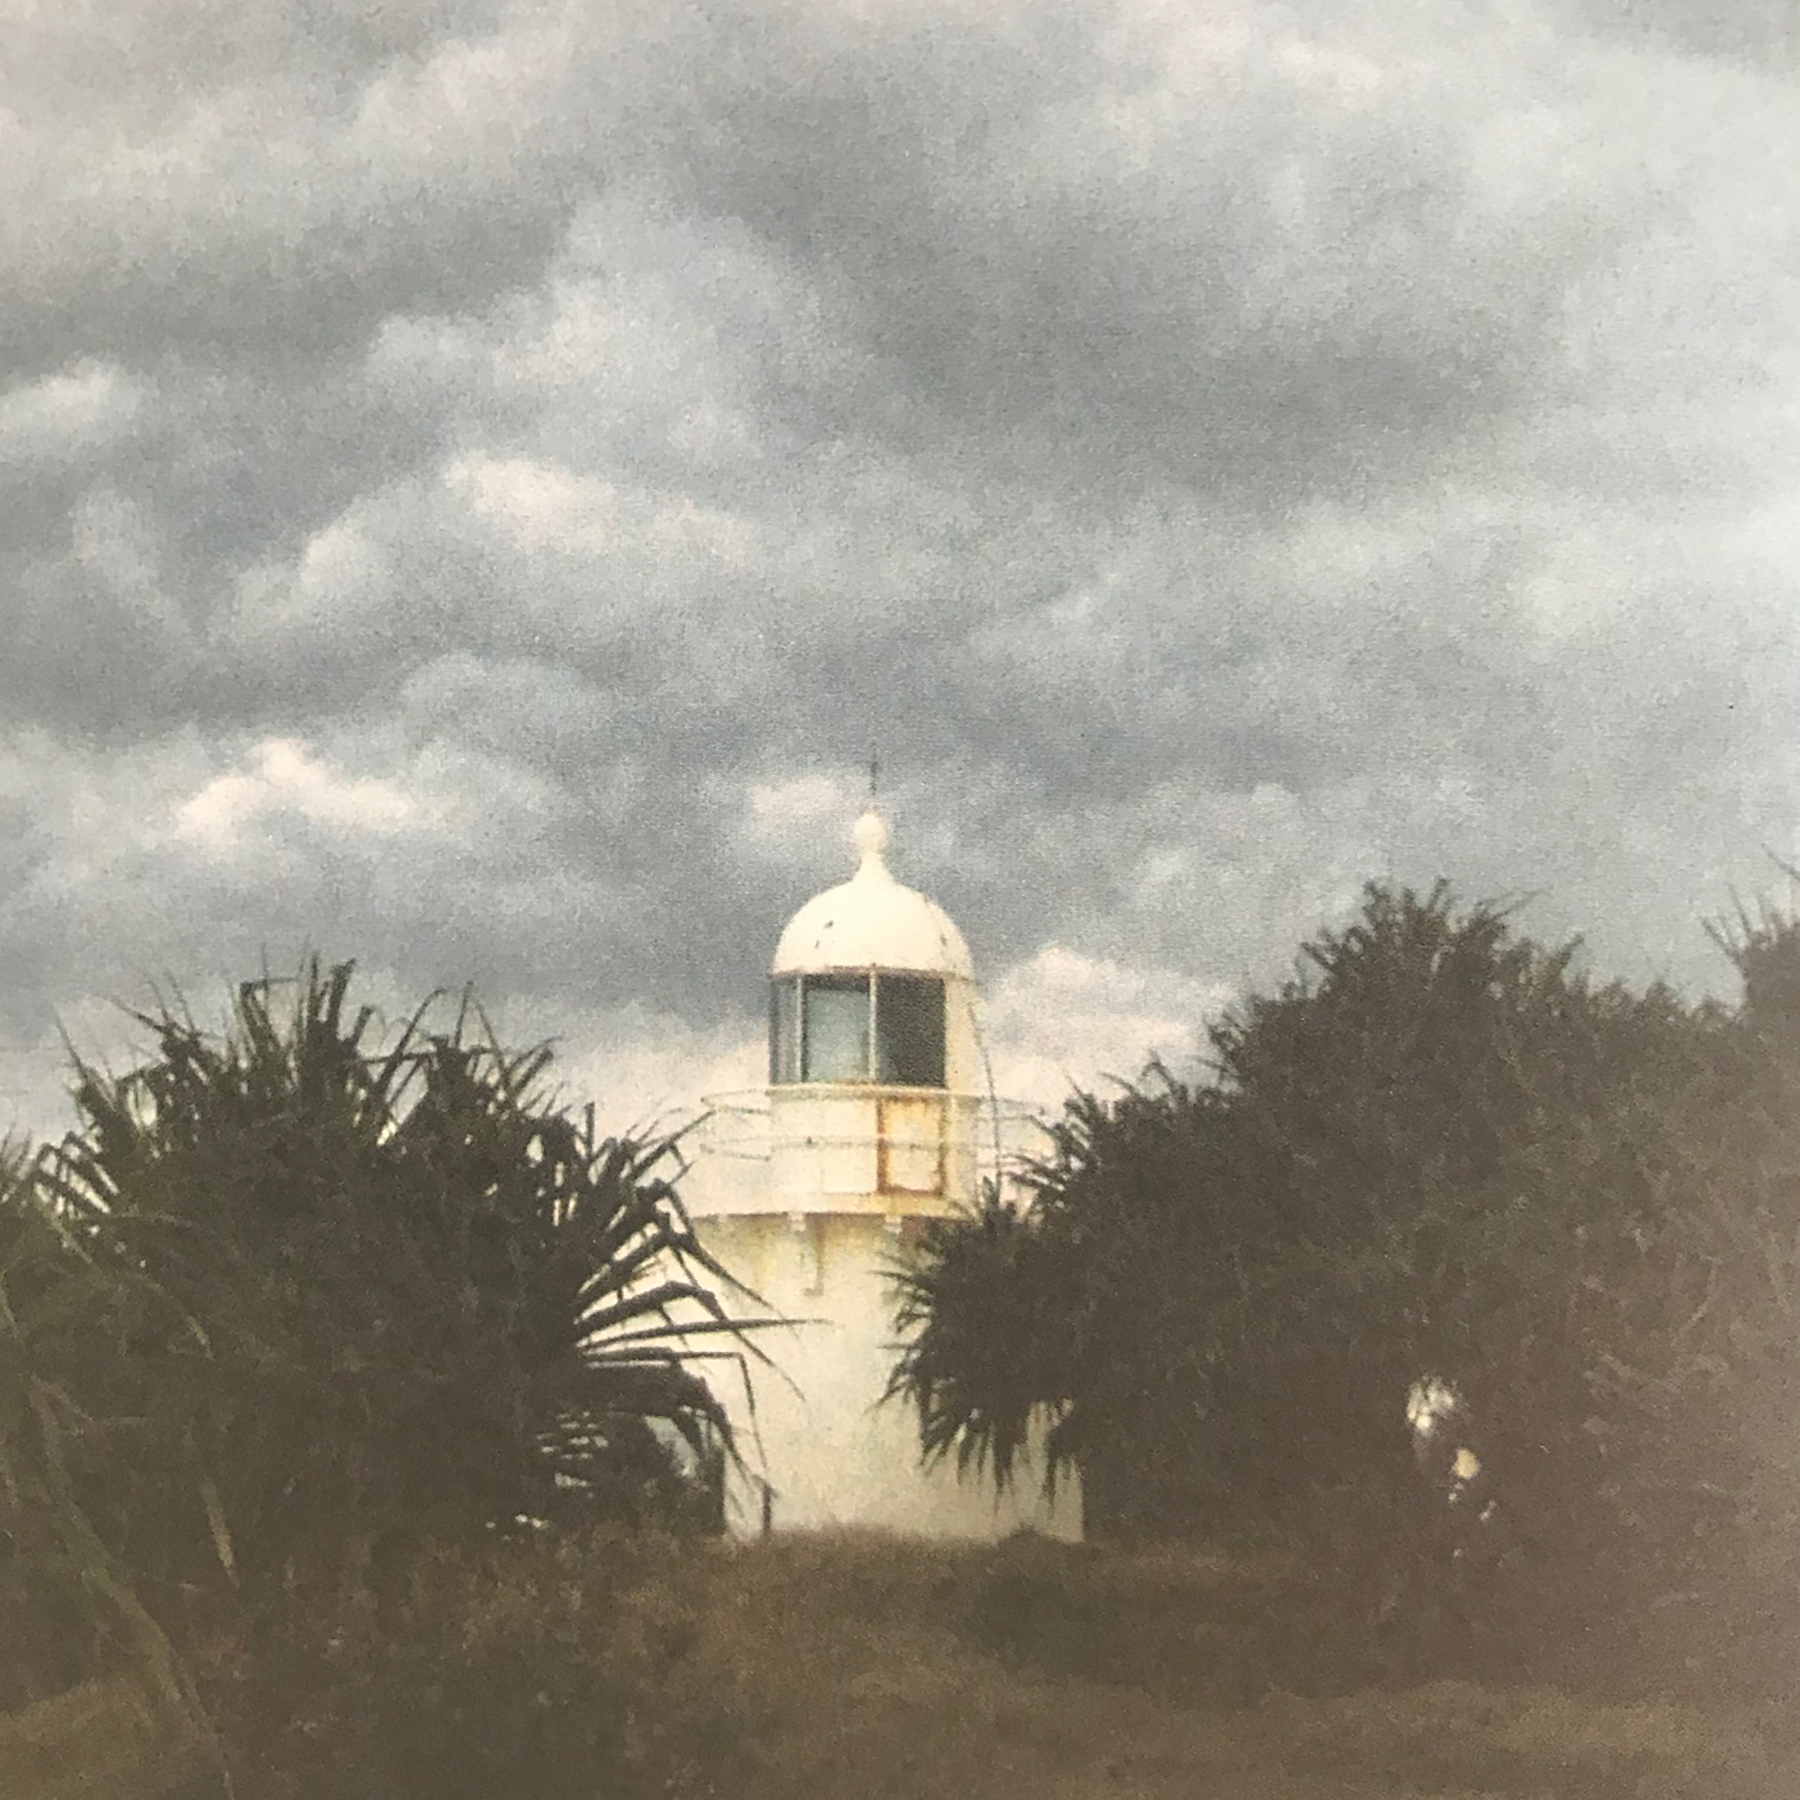 The Fingal Head lighthouse (Photo by H. Cutts).